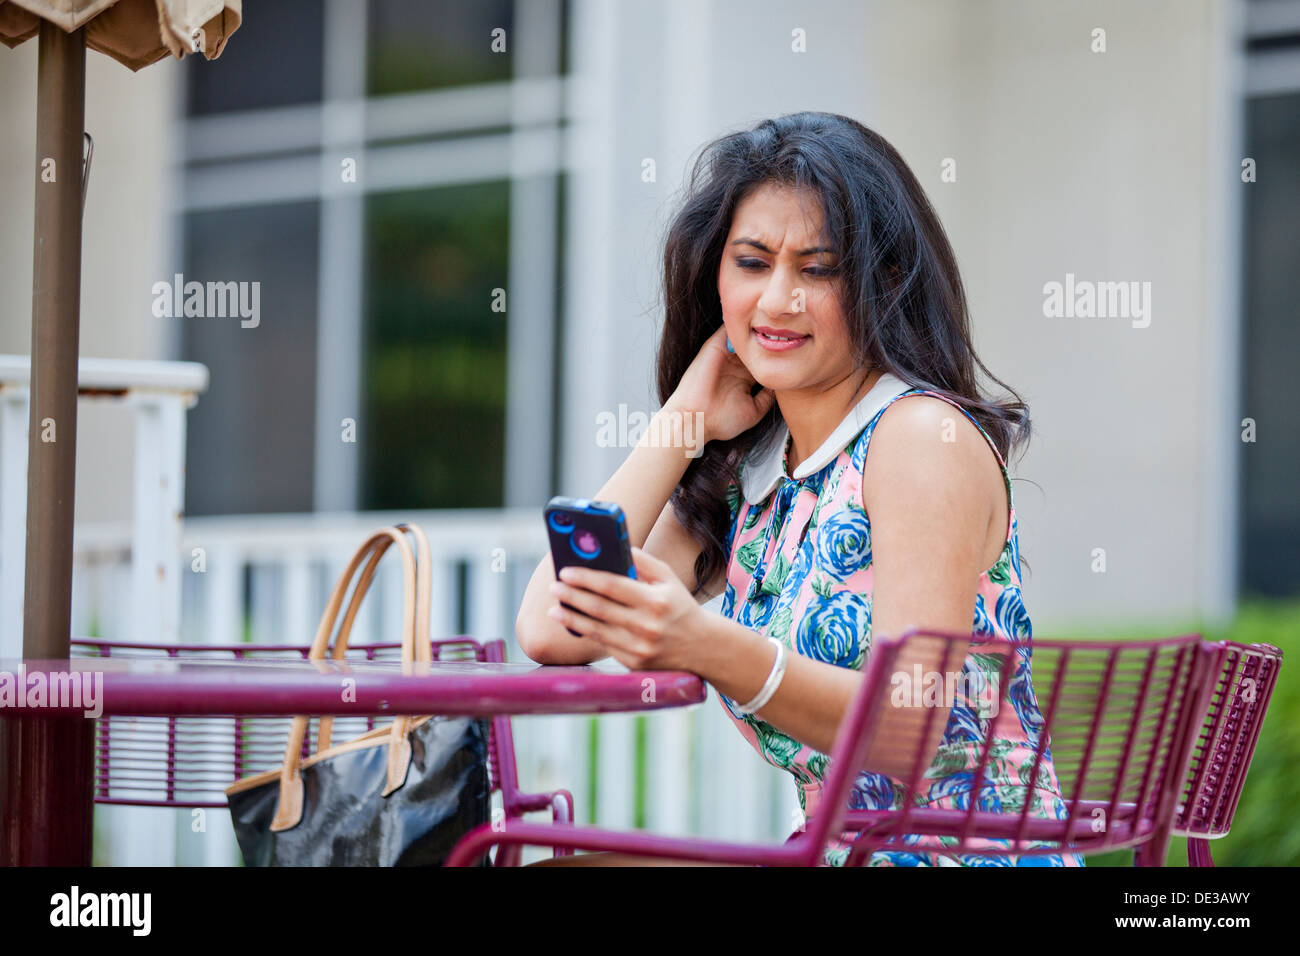 Concerned young woman looking at smart phone - Stock Image